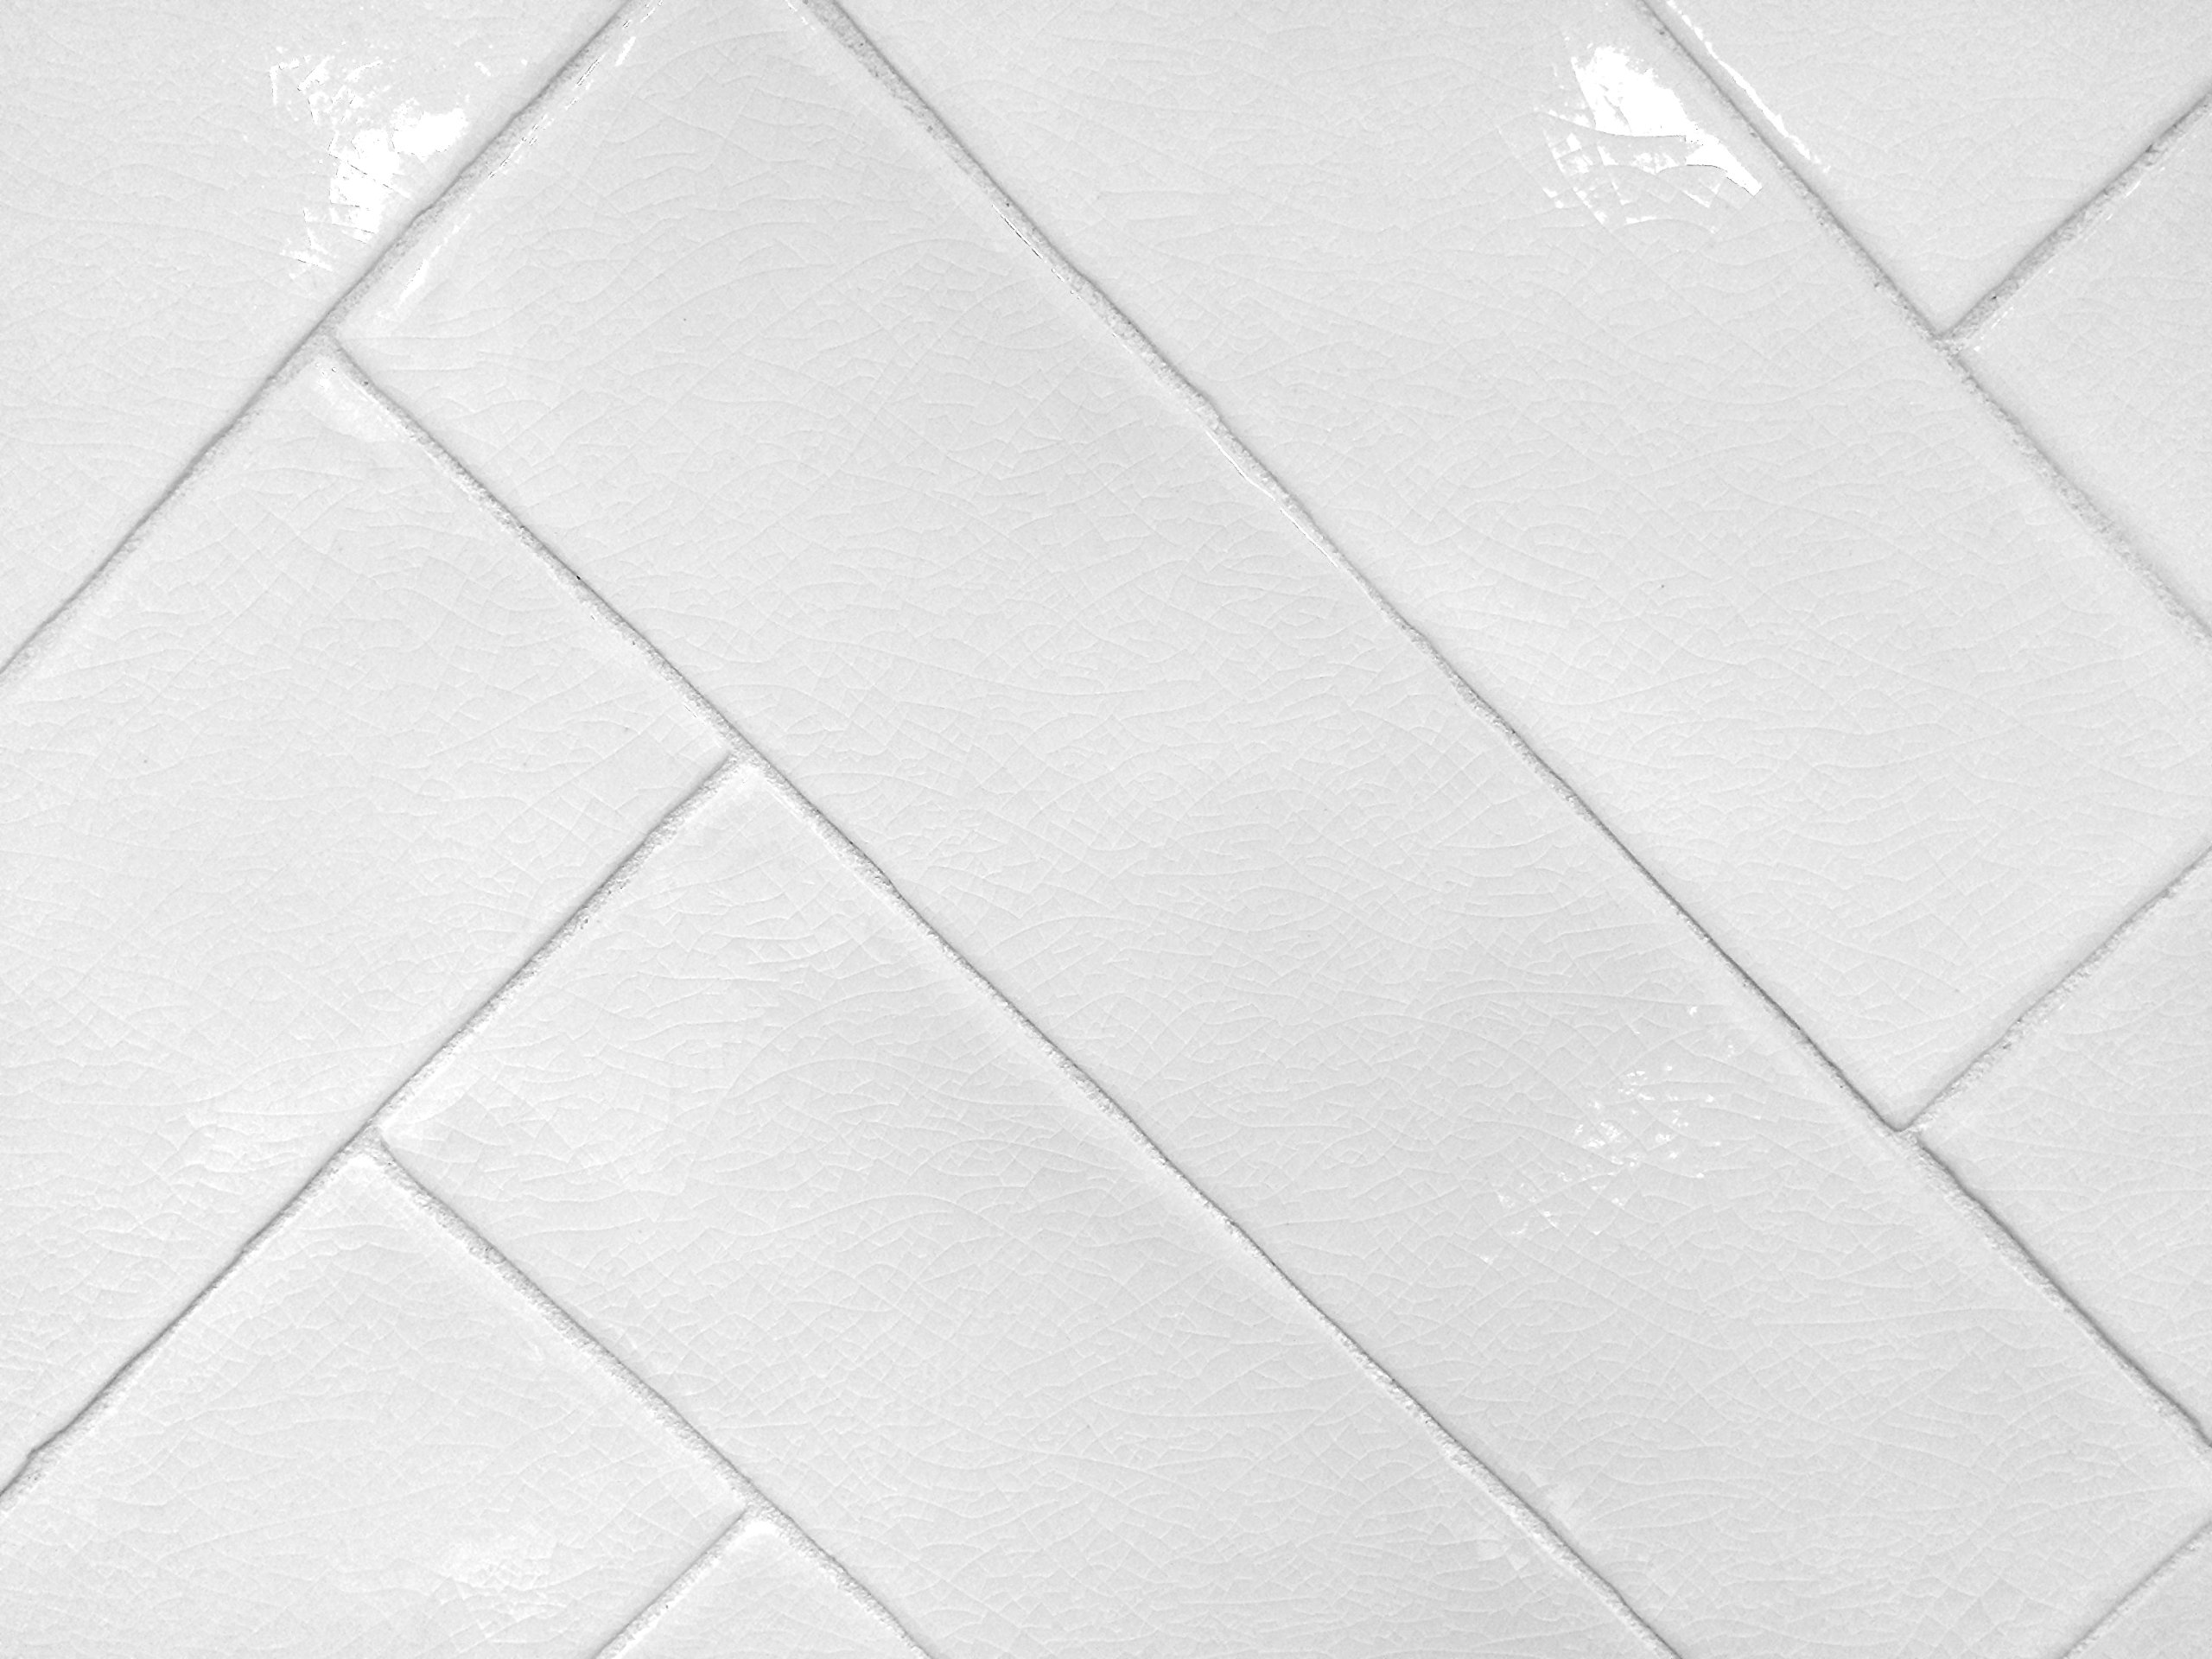 3x12 Handmade in Spain Glossy Finish White Crackled Ceramic Tile Kitchen Bath